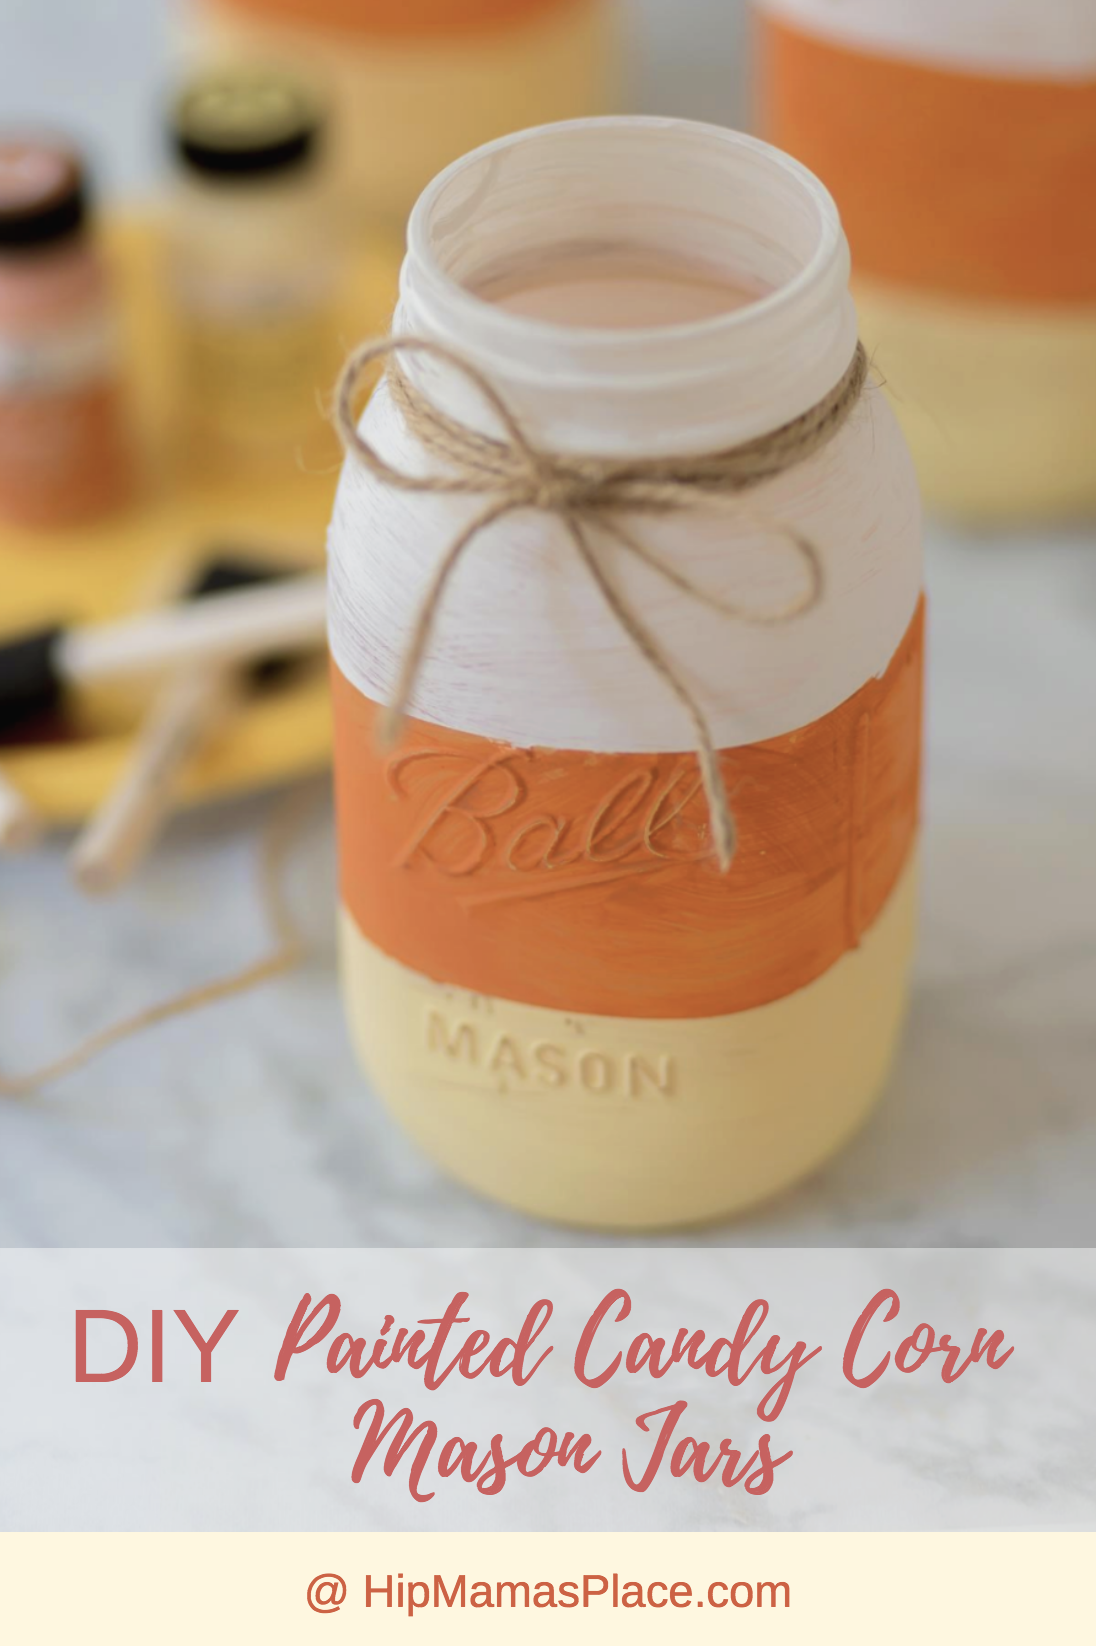 Here's a simple tutorial for DIY painted candy corn mason jars. Enjoy!